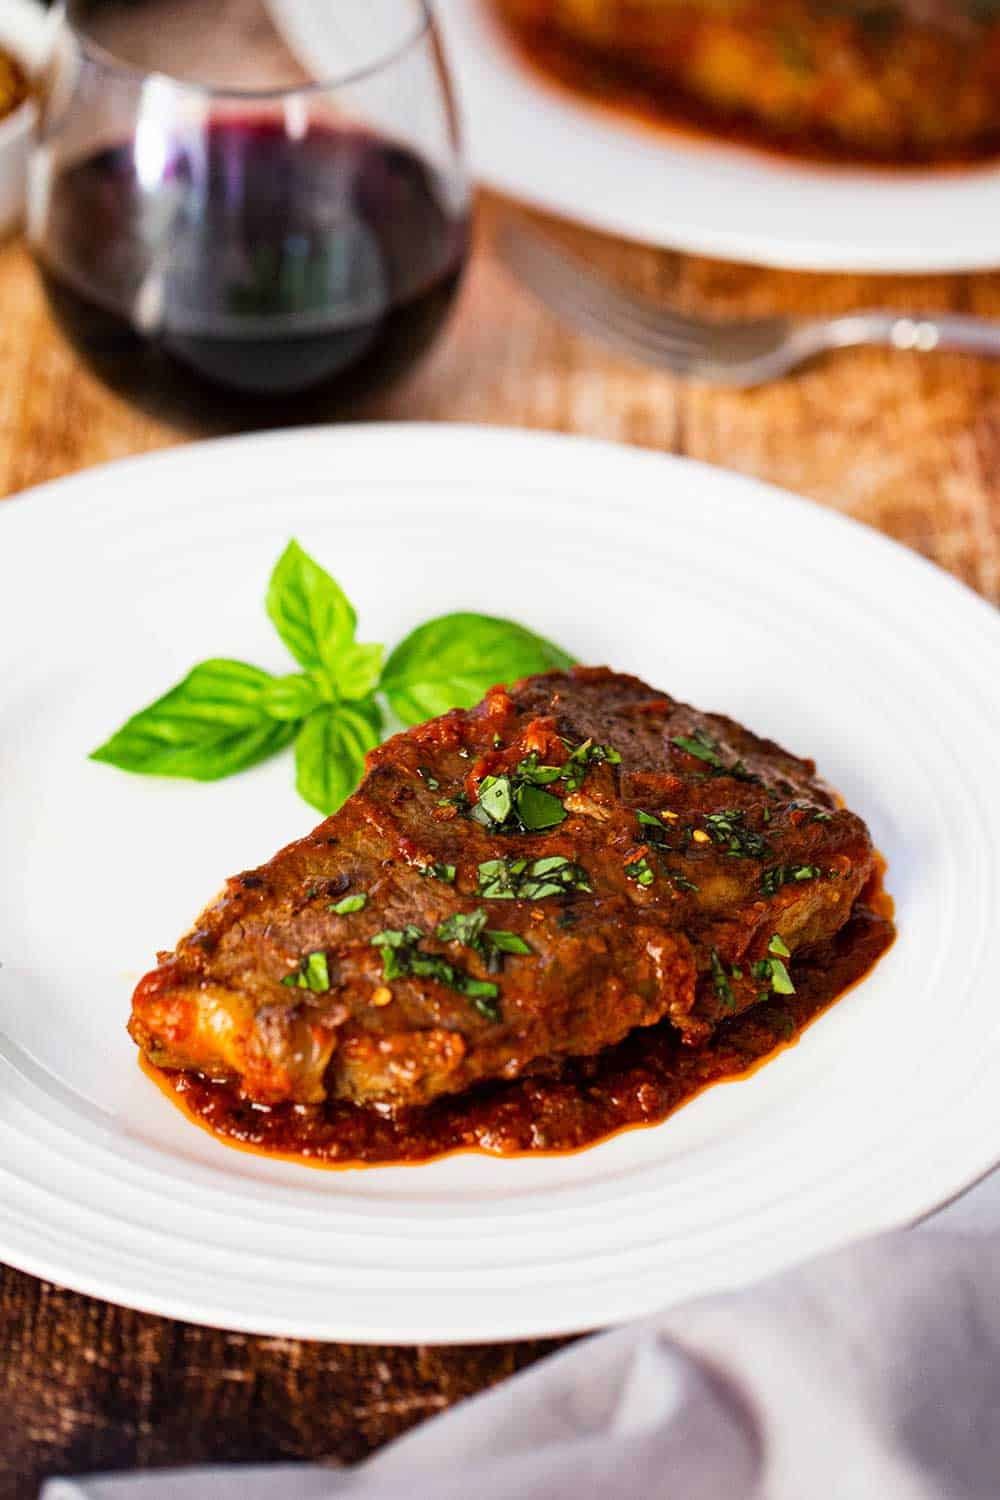 A single serving of steak pizzaiola on a white dinner plate sitting next to a glass of red wine.